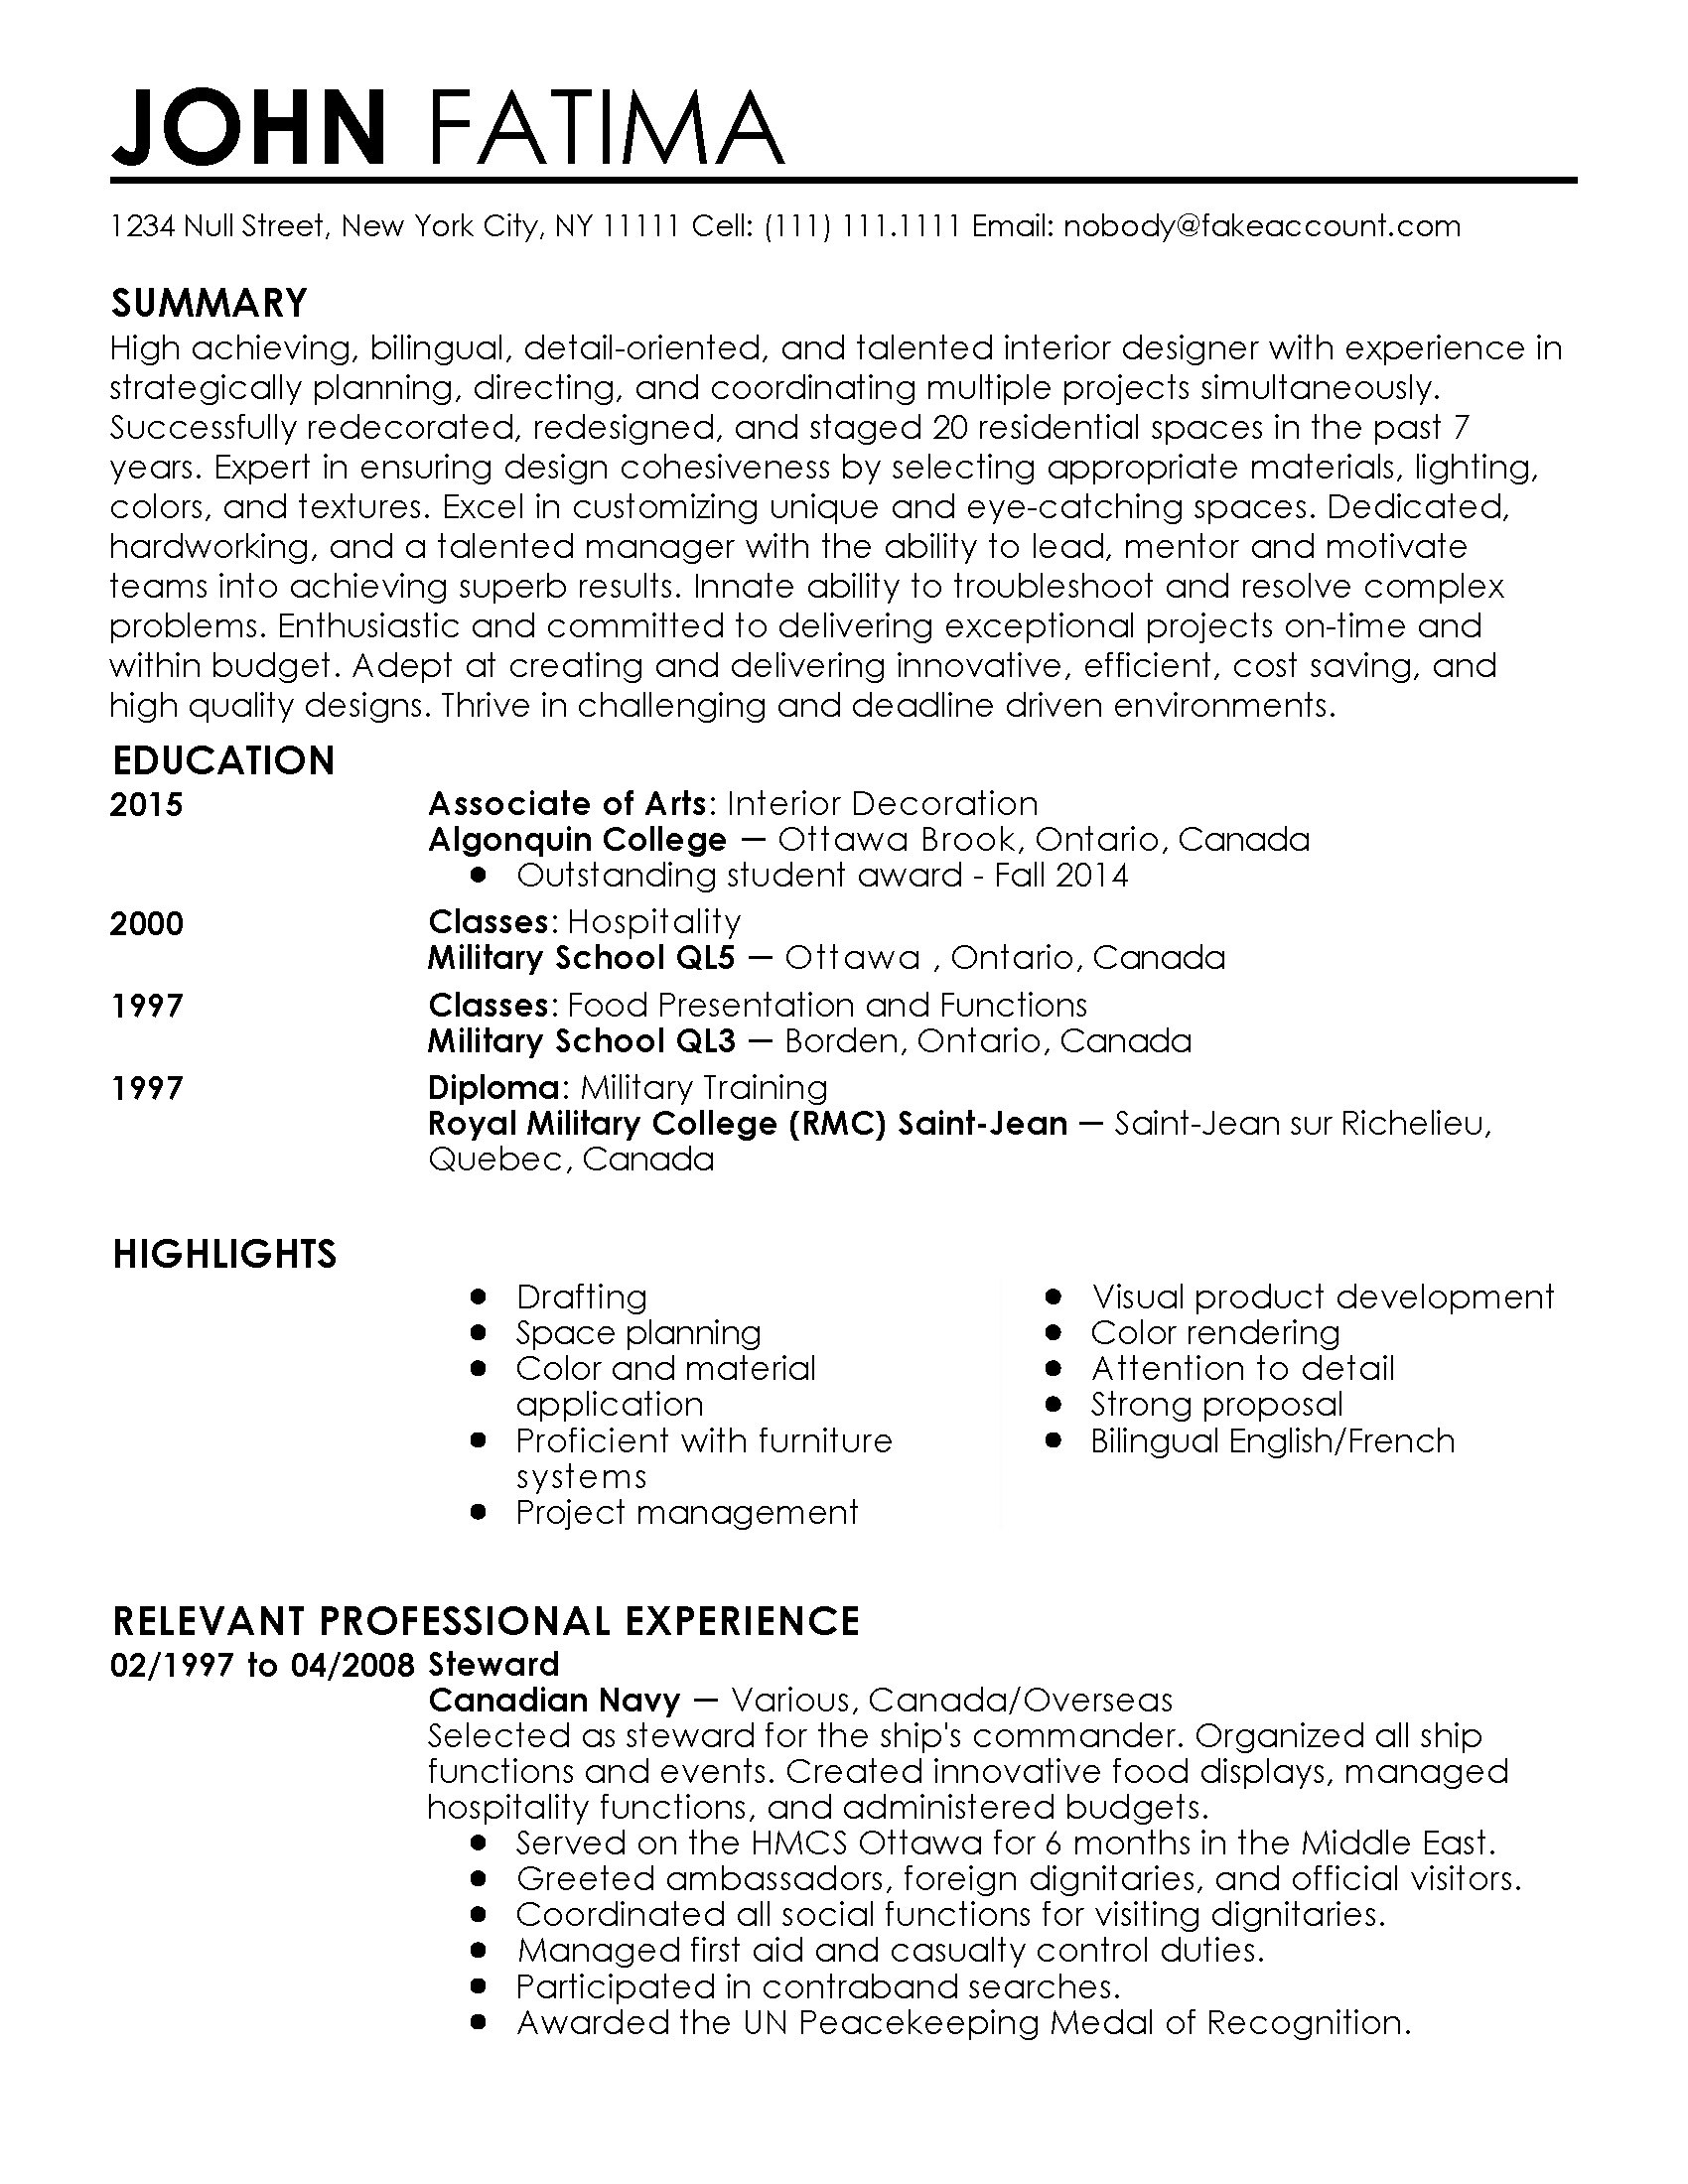 Professional Resume Help Cover Letter